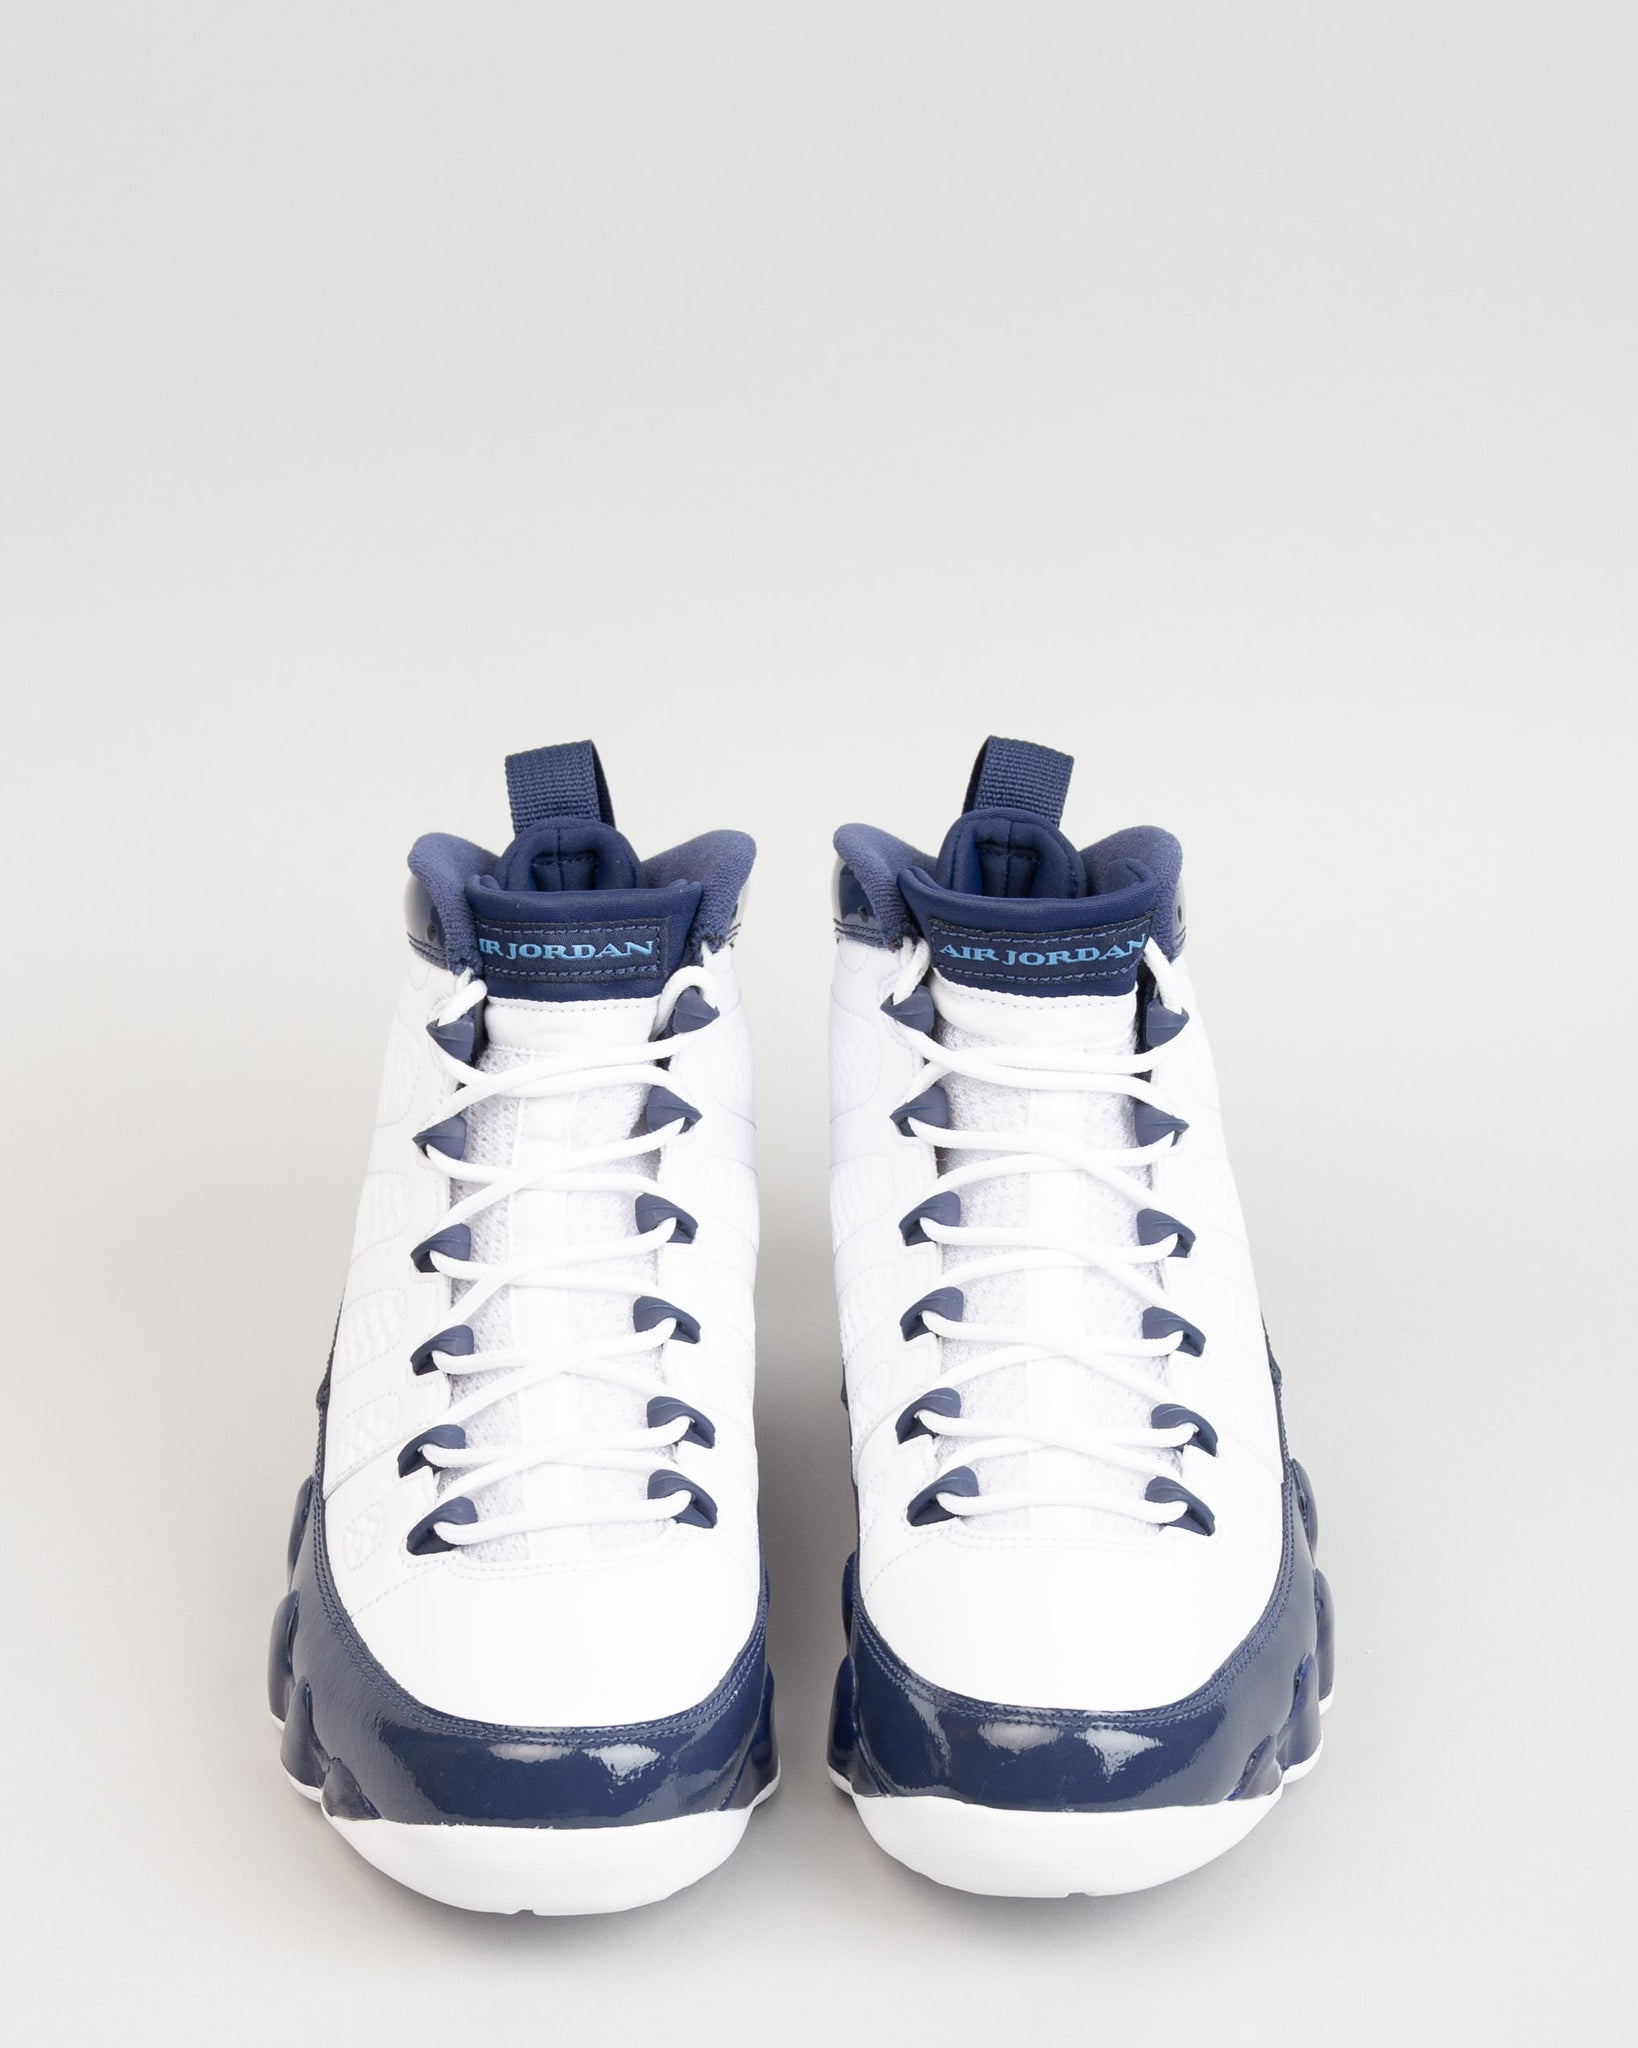 Air Jordan 9 Retro White/University Blue/Midnight Navy